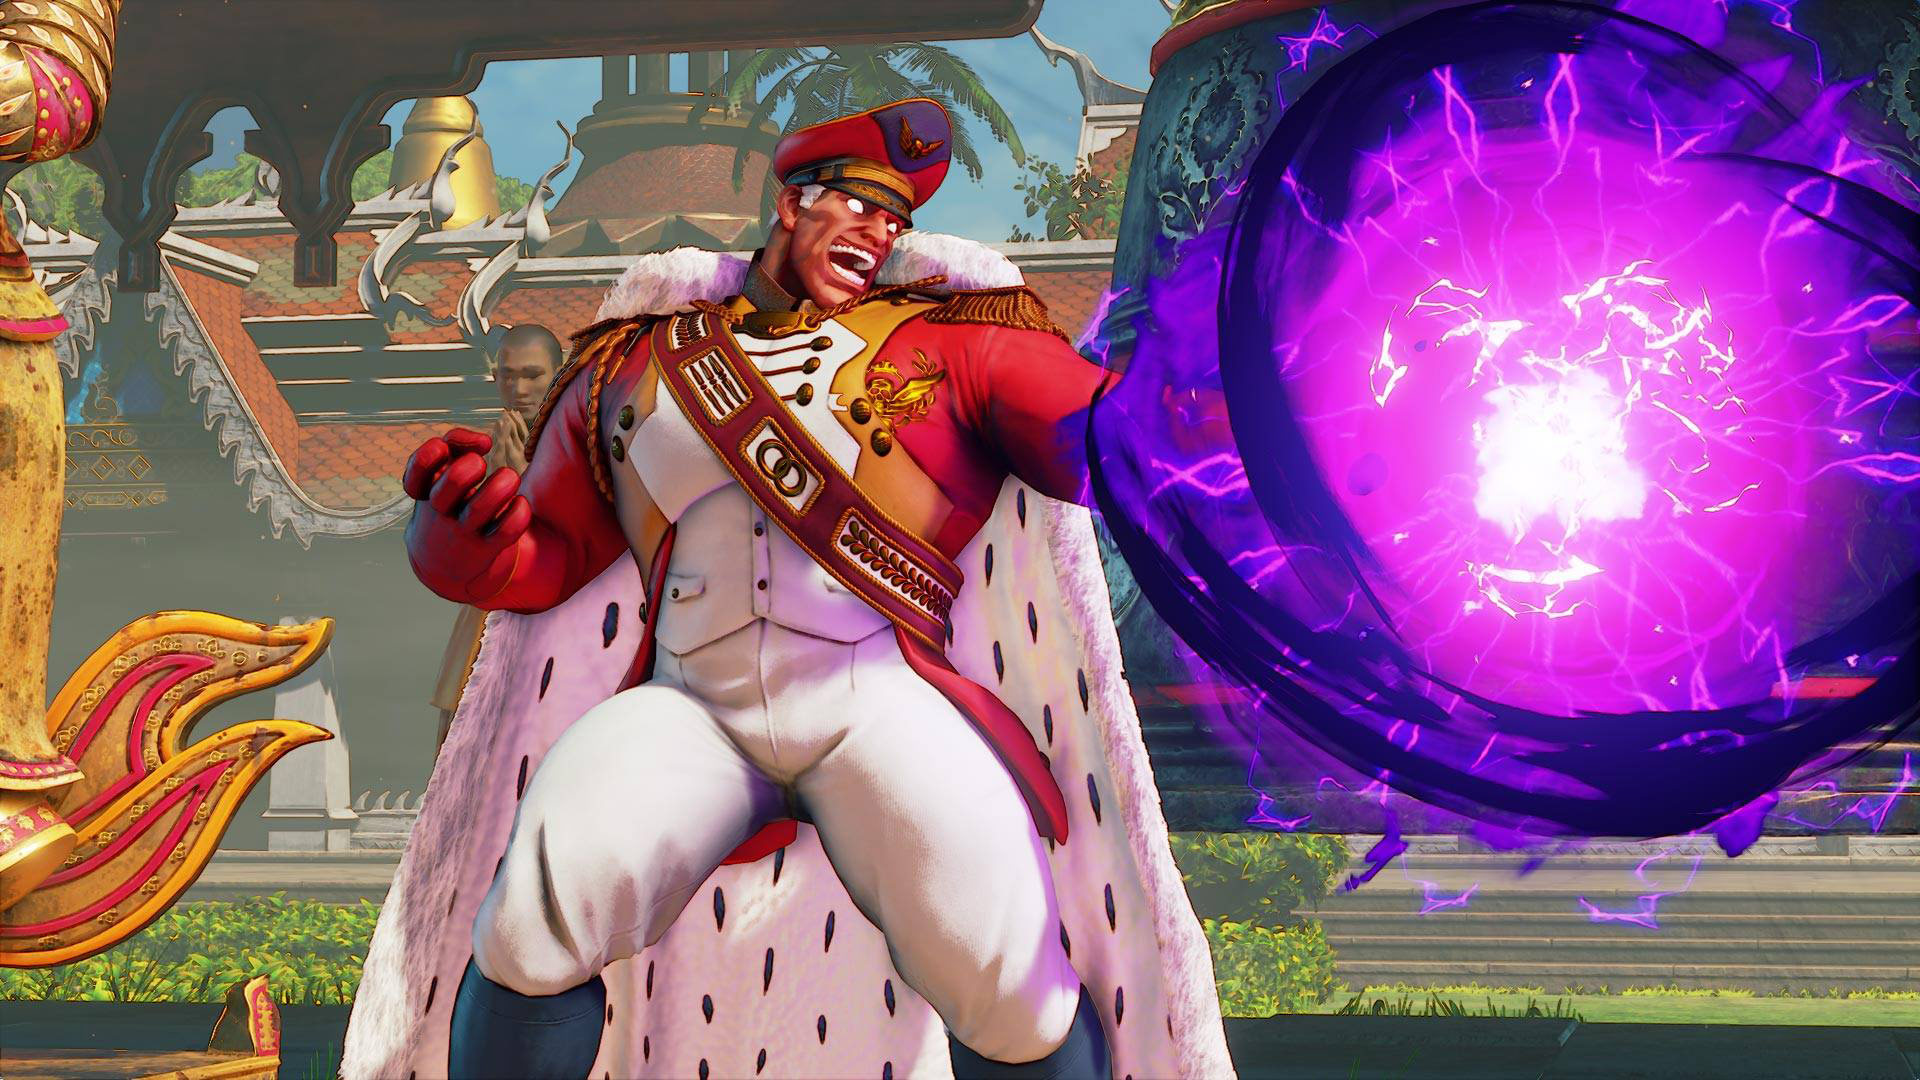 New Street Fighter 5 30th anniversary costumes 3 out of 6 image gallery